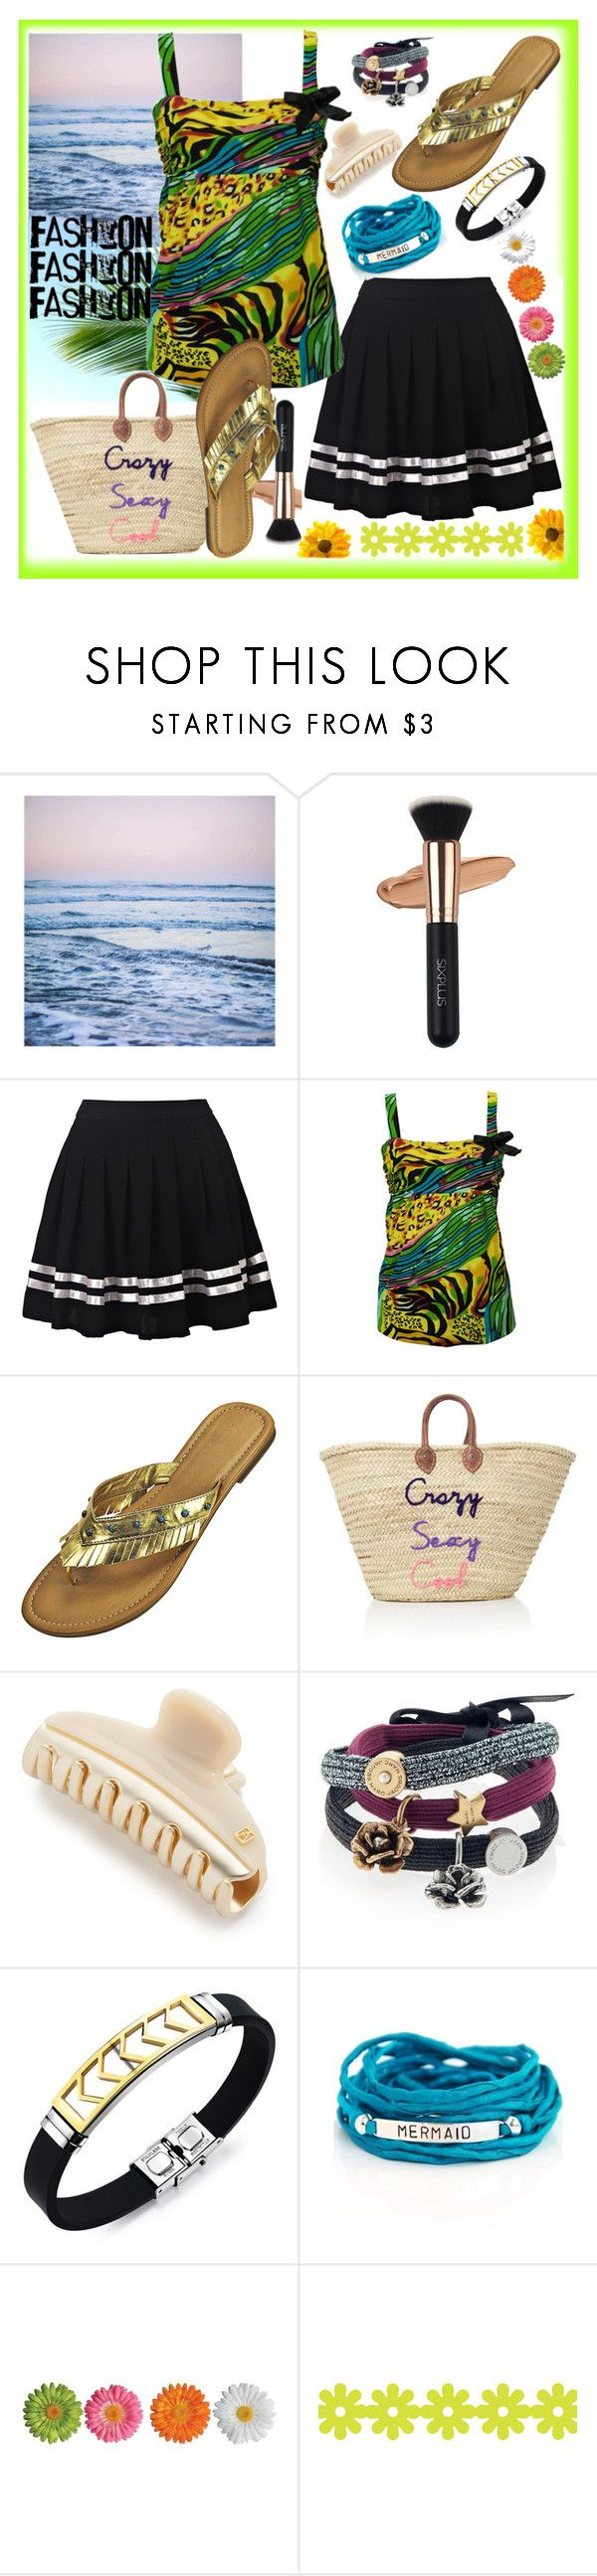 """Summer Night Dinner Date"" by westcoastcharmed ❤ liked on Polyvore featuring Leah Flores, Alexandre de Paris, Marc Jacobs and Blooming Lotus Jewelry"